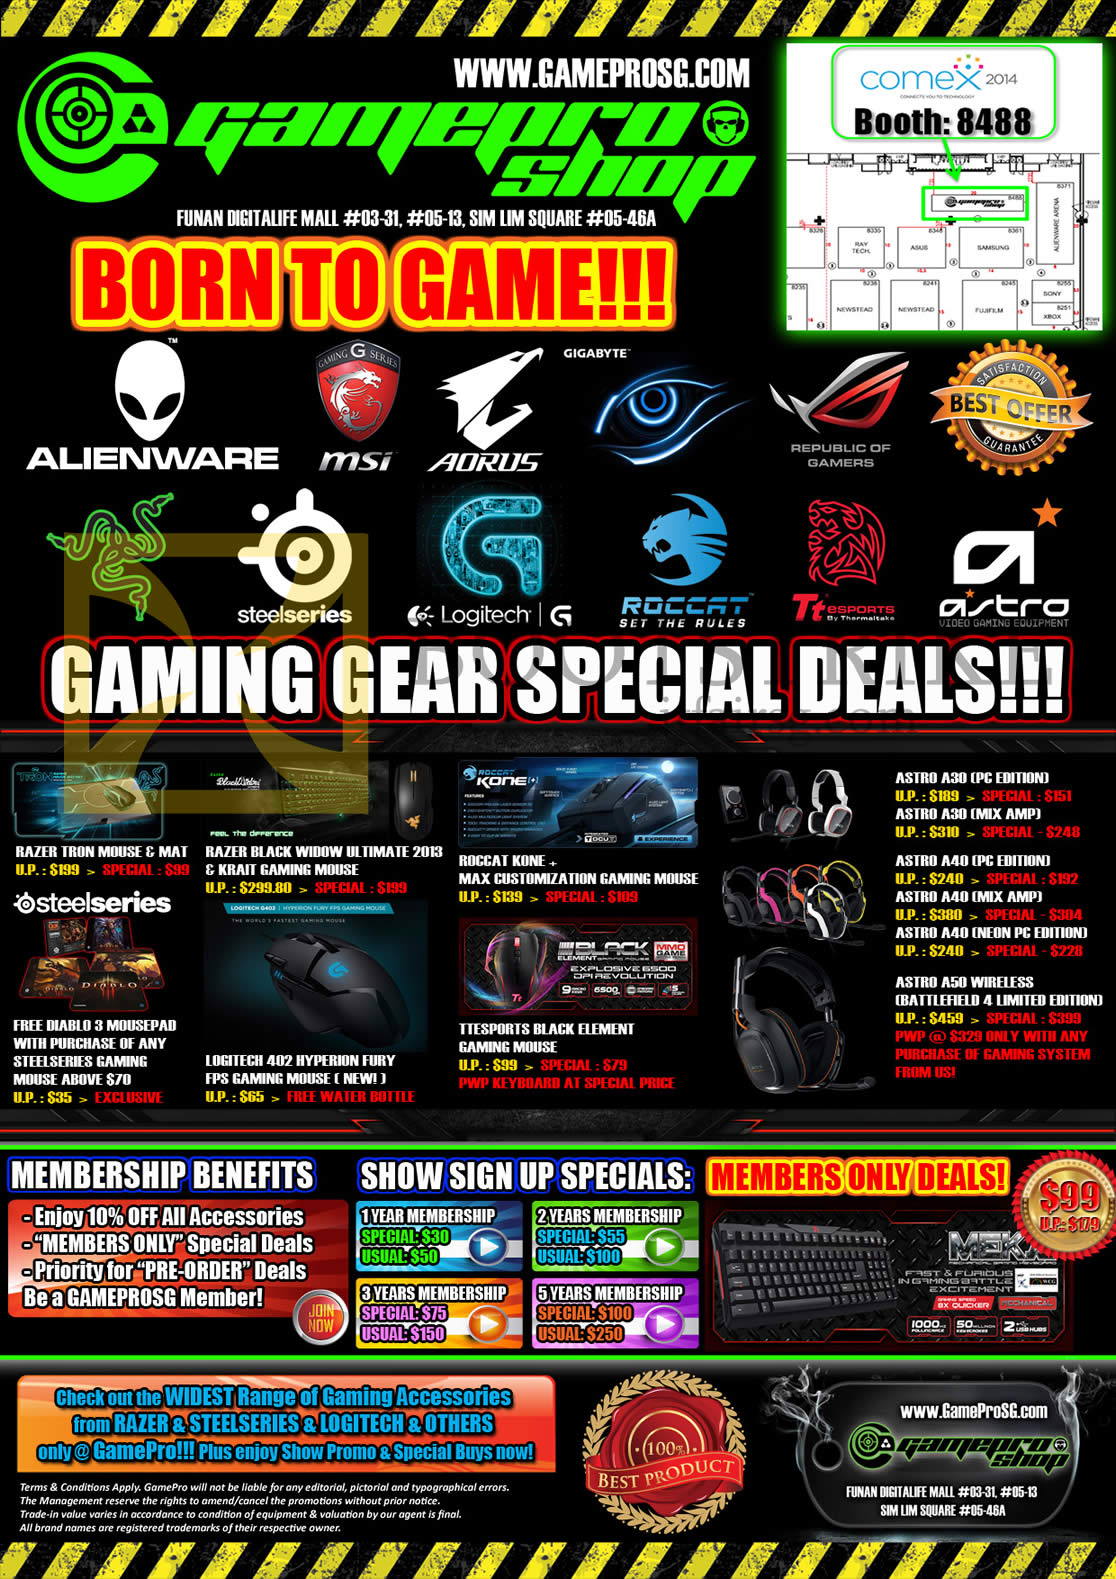 COMEX 2014 price list image brochure of Gamepro Gaming Accessories Razer, Steelseries, Roccat, Astro, Headset, Keyboard, Mouse